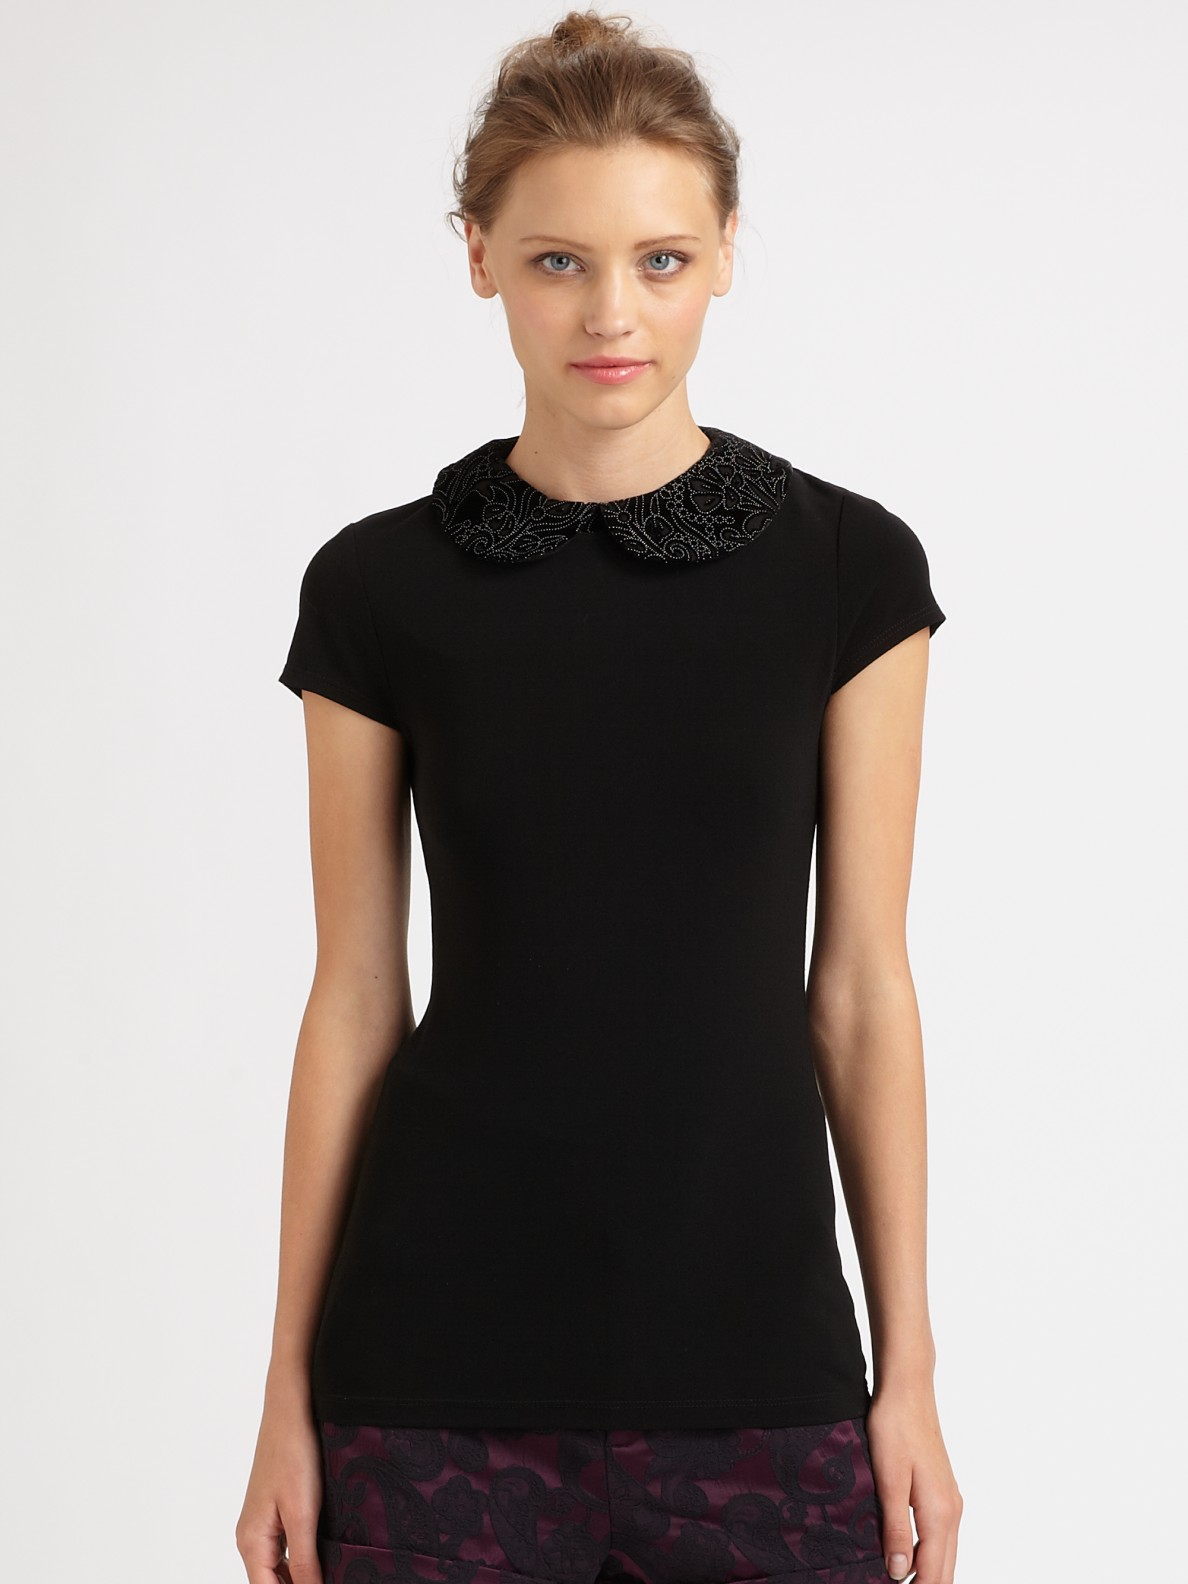 Black Collared Tie Back Tropical Print Bodycon Dress From: Alice + Olivia Olympia Peter Pan Collar Blouse In Black